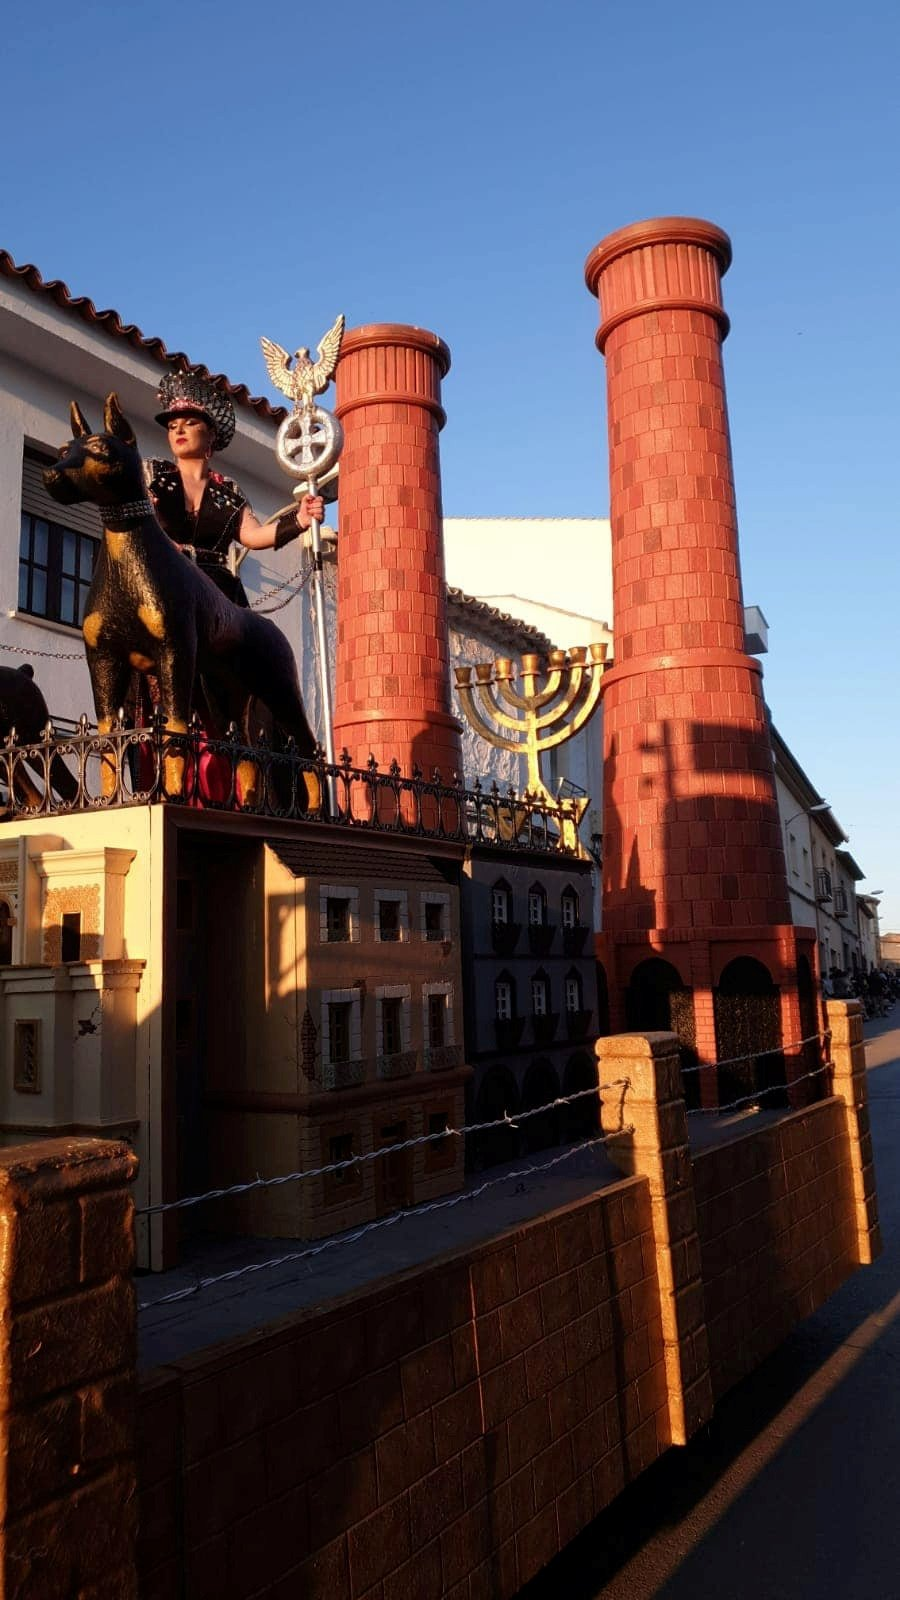 A woman is seen standing on a carnival float depicting Third Reich eagle symbol, Menorah candle holder and crematorium chimneys, during a carnival parade in Campo De Criptana, Ciudad Real Province, Spain February 24, 2020 in this picture obtained from social media. DIMAS DONATE/via REUTERS